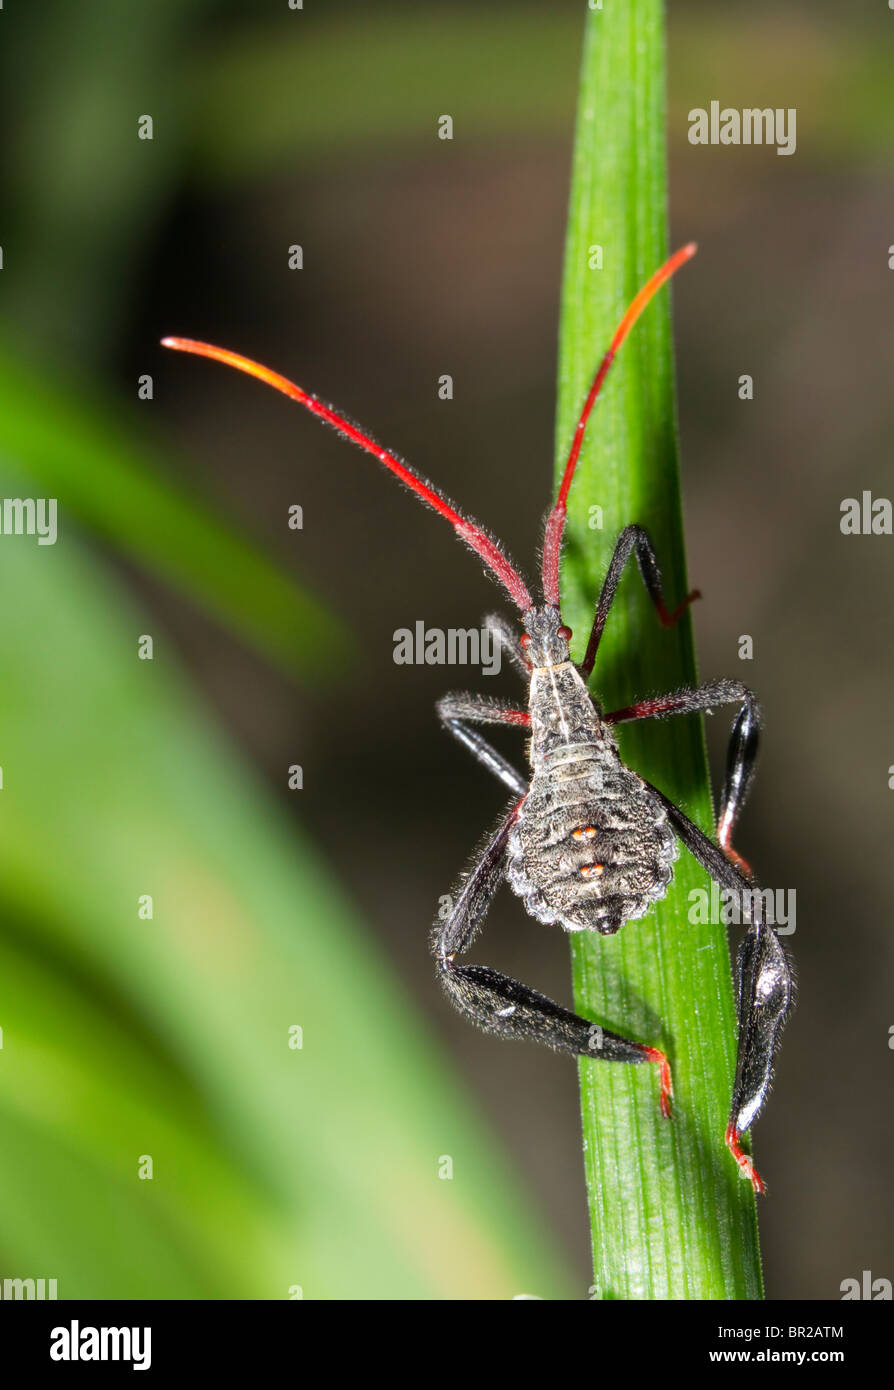 Adolescent nymph of a leaf-footed bug (Acanthocephala sp). Stock Photo